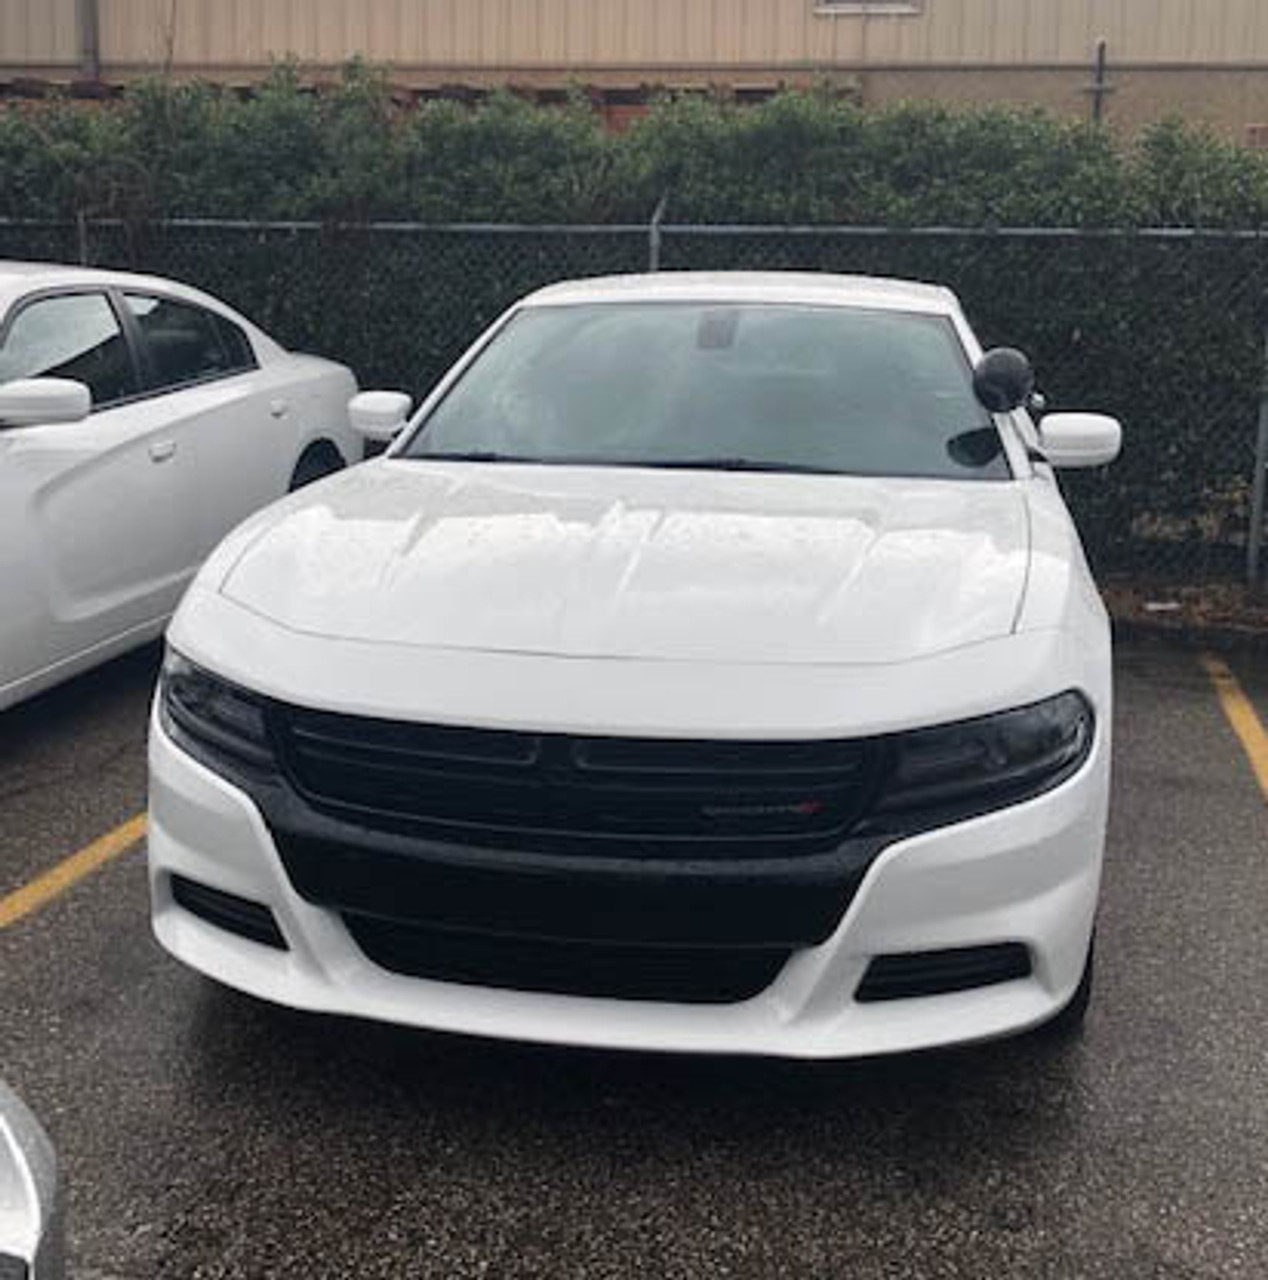 New White Dodge Charger PPV V8 RWD ready to be built as a Marked Patrol Package Police Pursuit Car,  choose any color LED Lights, + Delivery